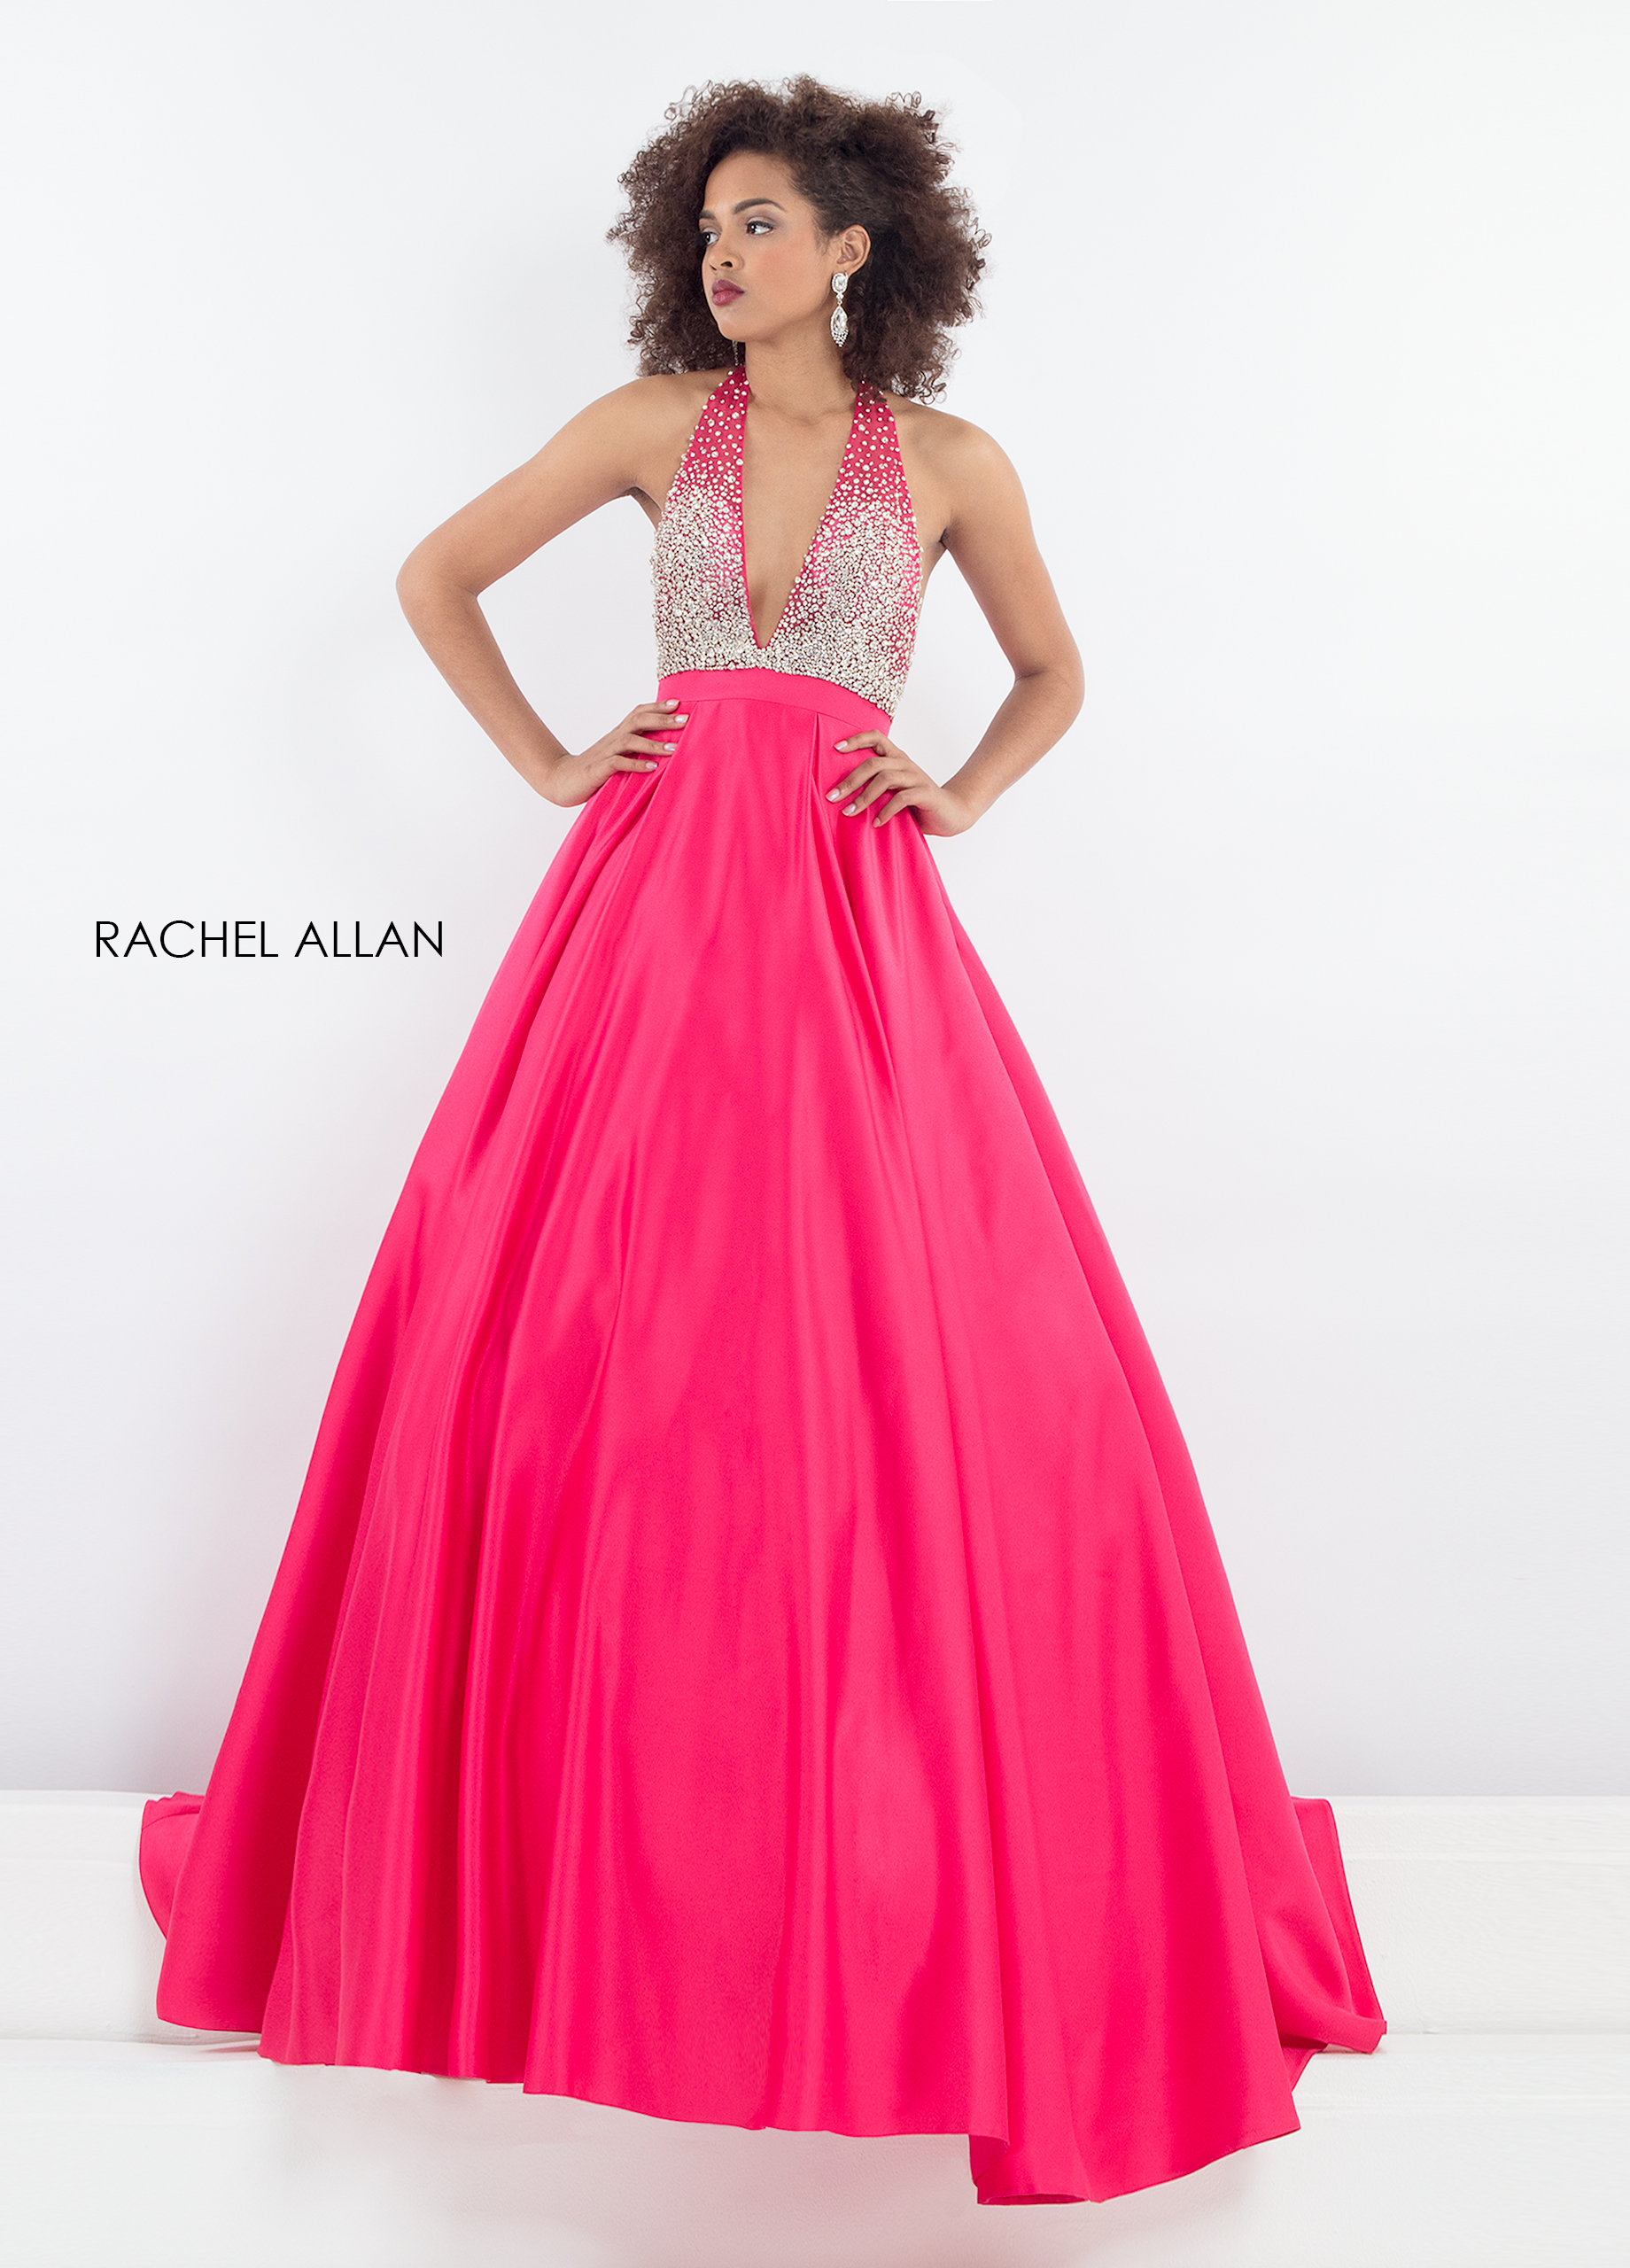 Halter A-Line Pageant Dresses in Fuchsia Color